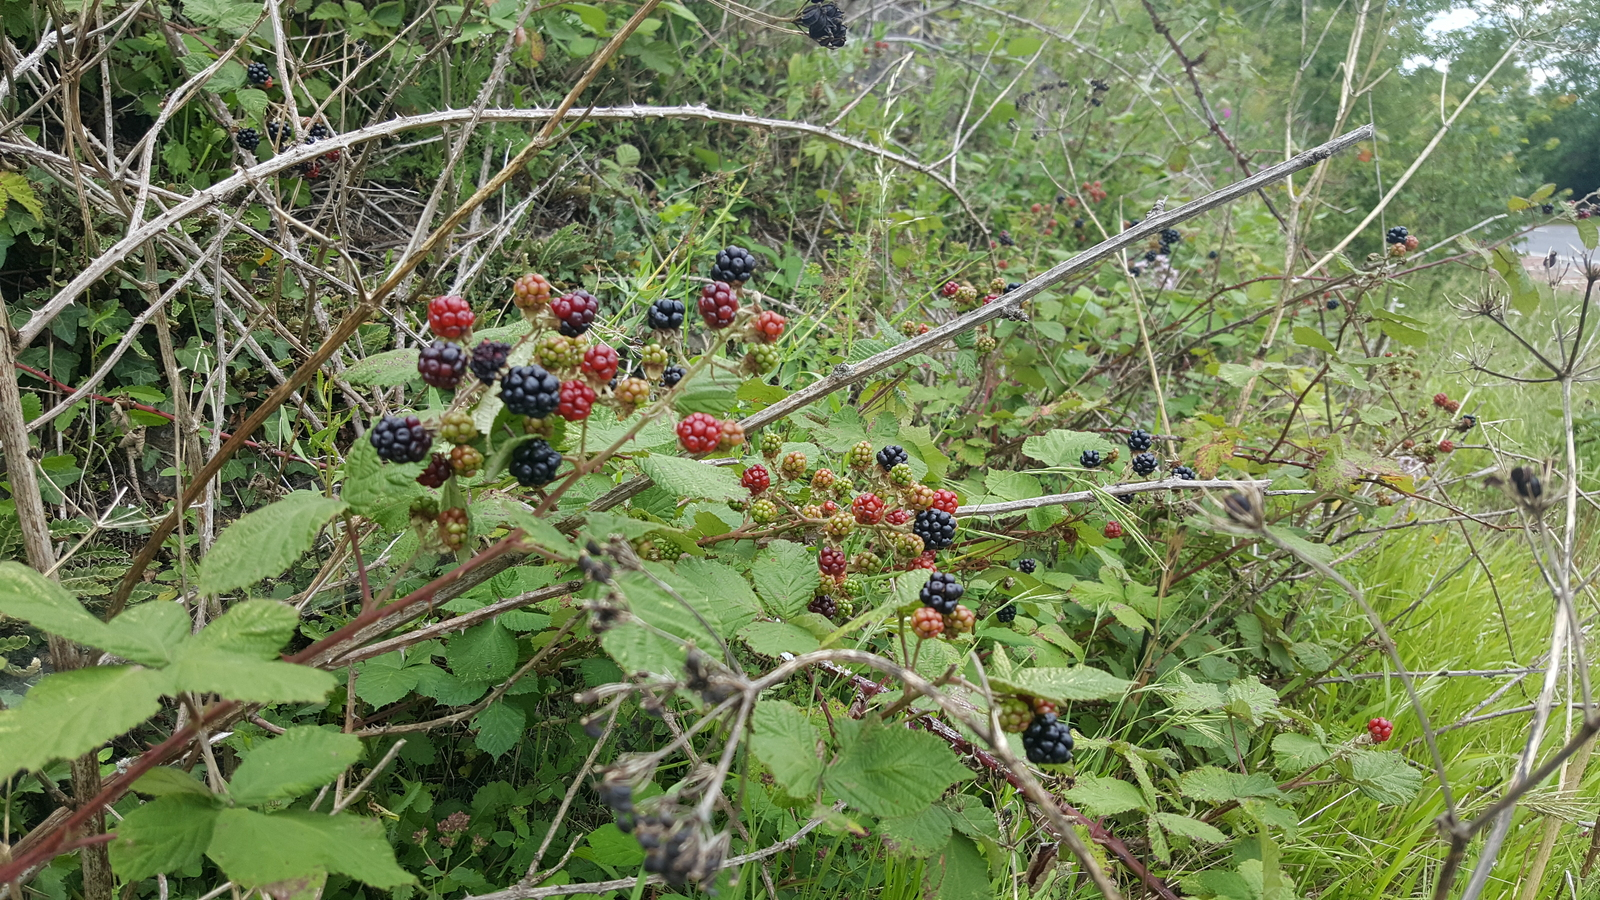 Axbridge By-pass A371 Old Railway Cutting - Blackberries starting to get ripe